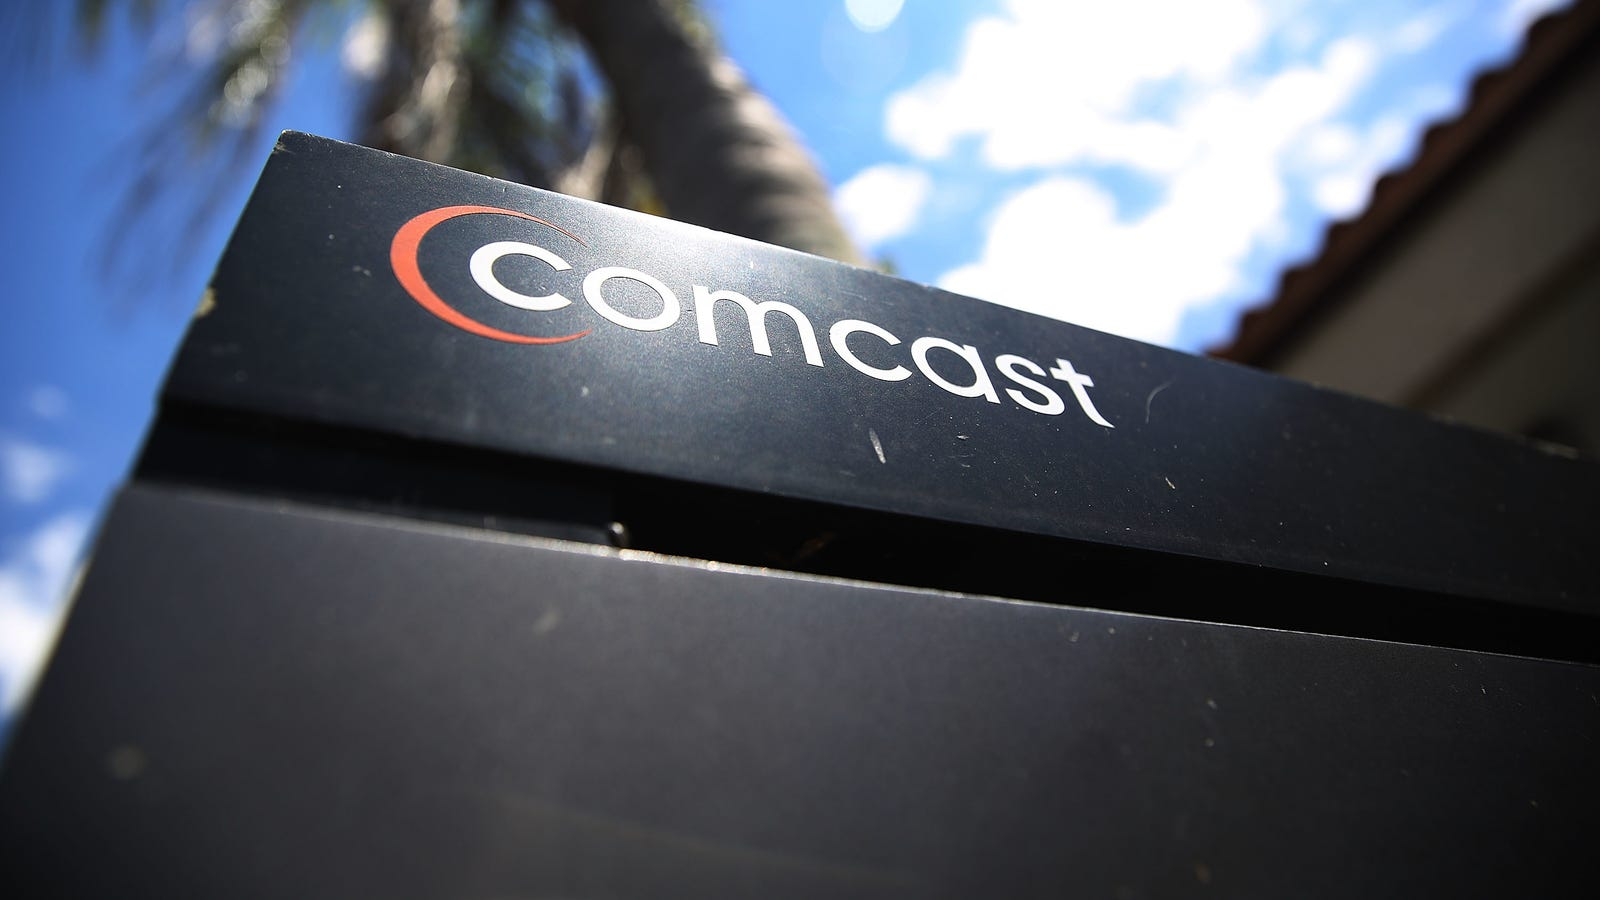 photo image Comcast Finds New Way to Screw Over Customers By Charging Unnecessary $90 Installation Fee